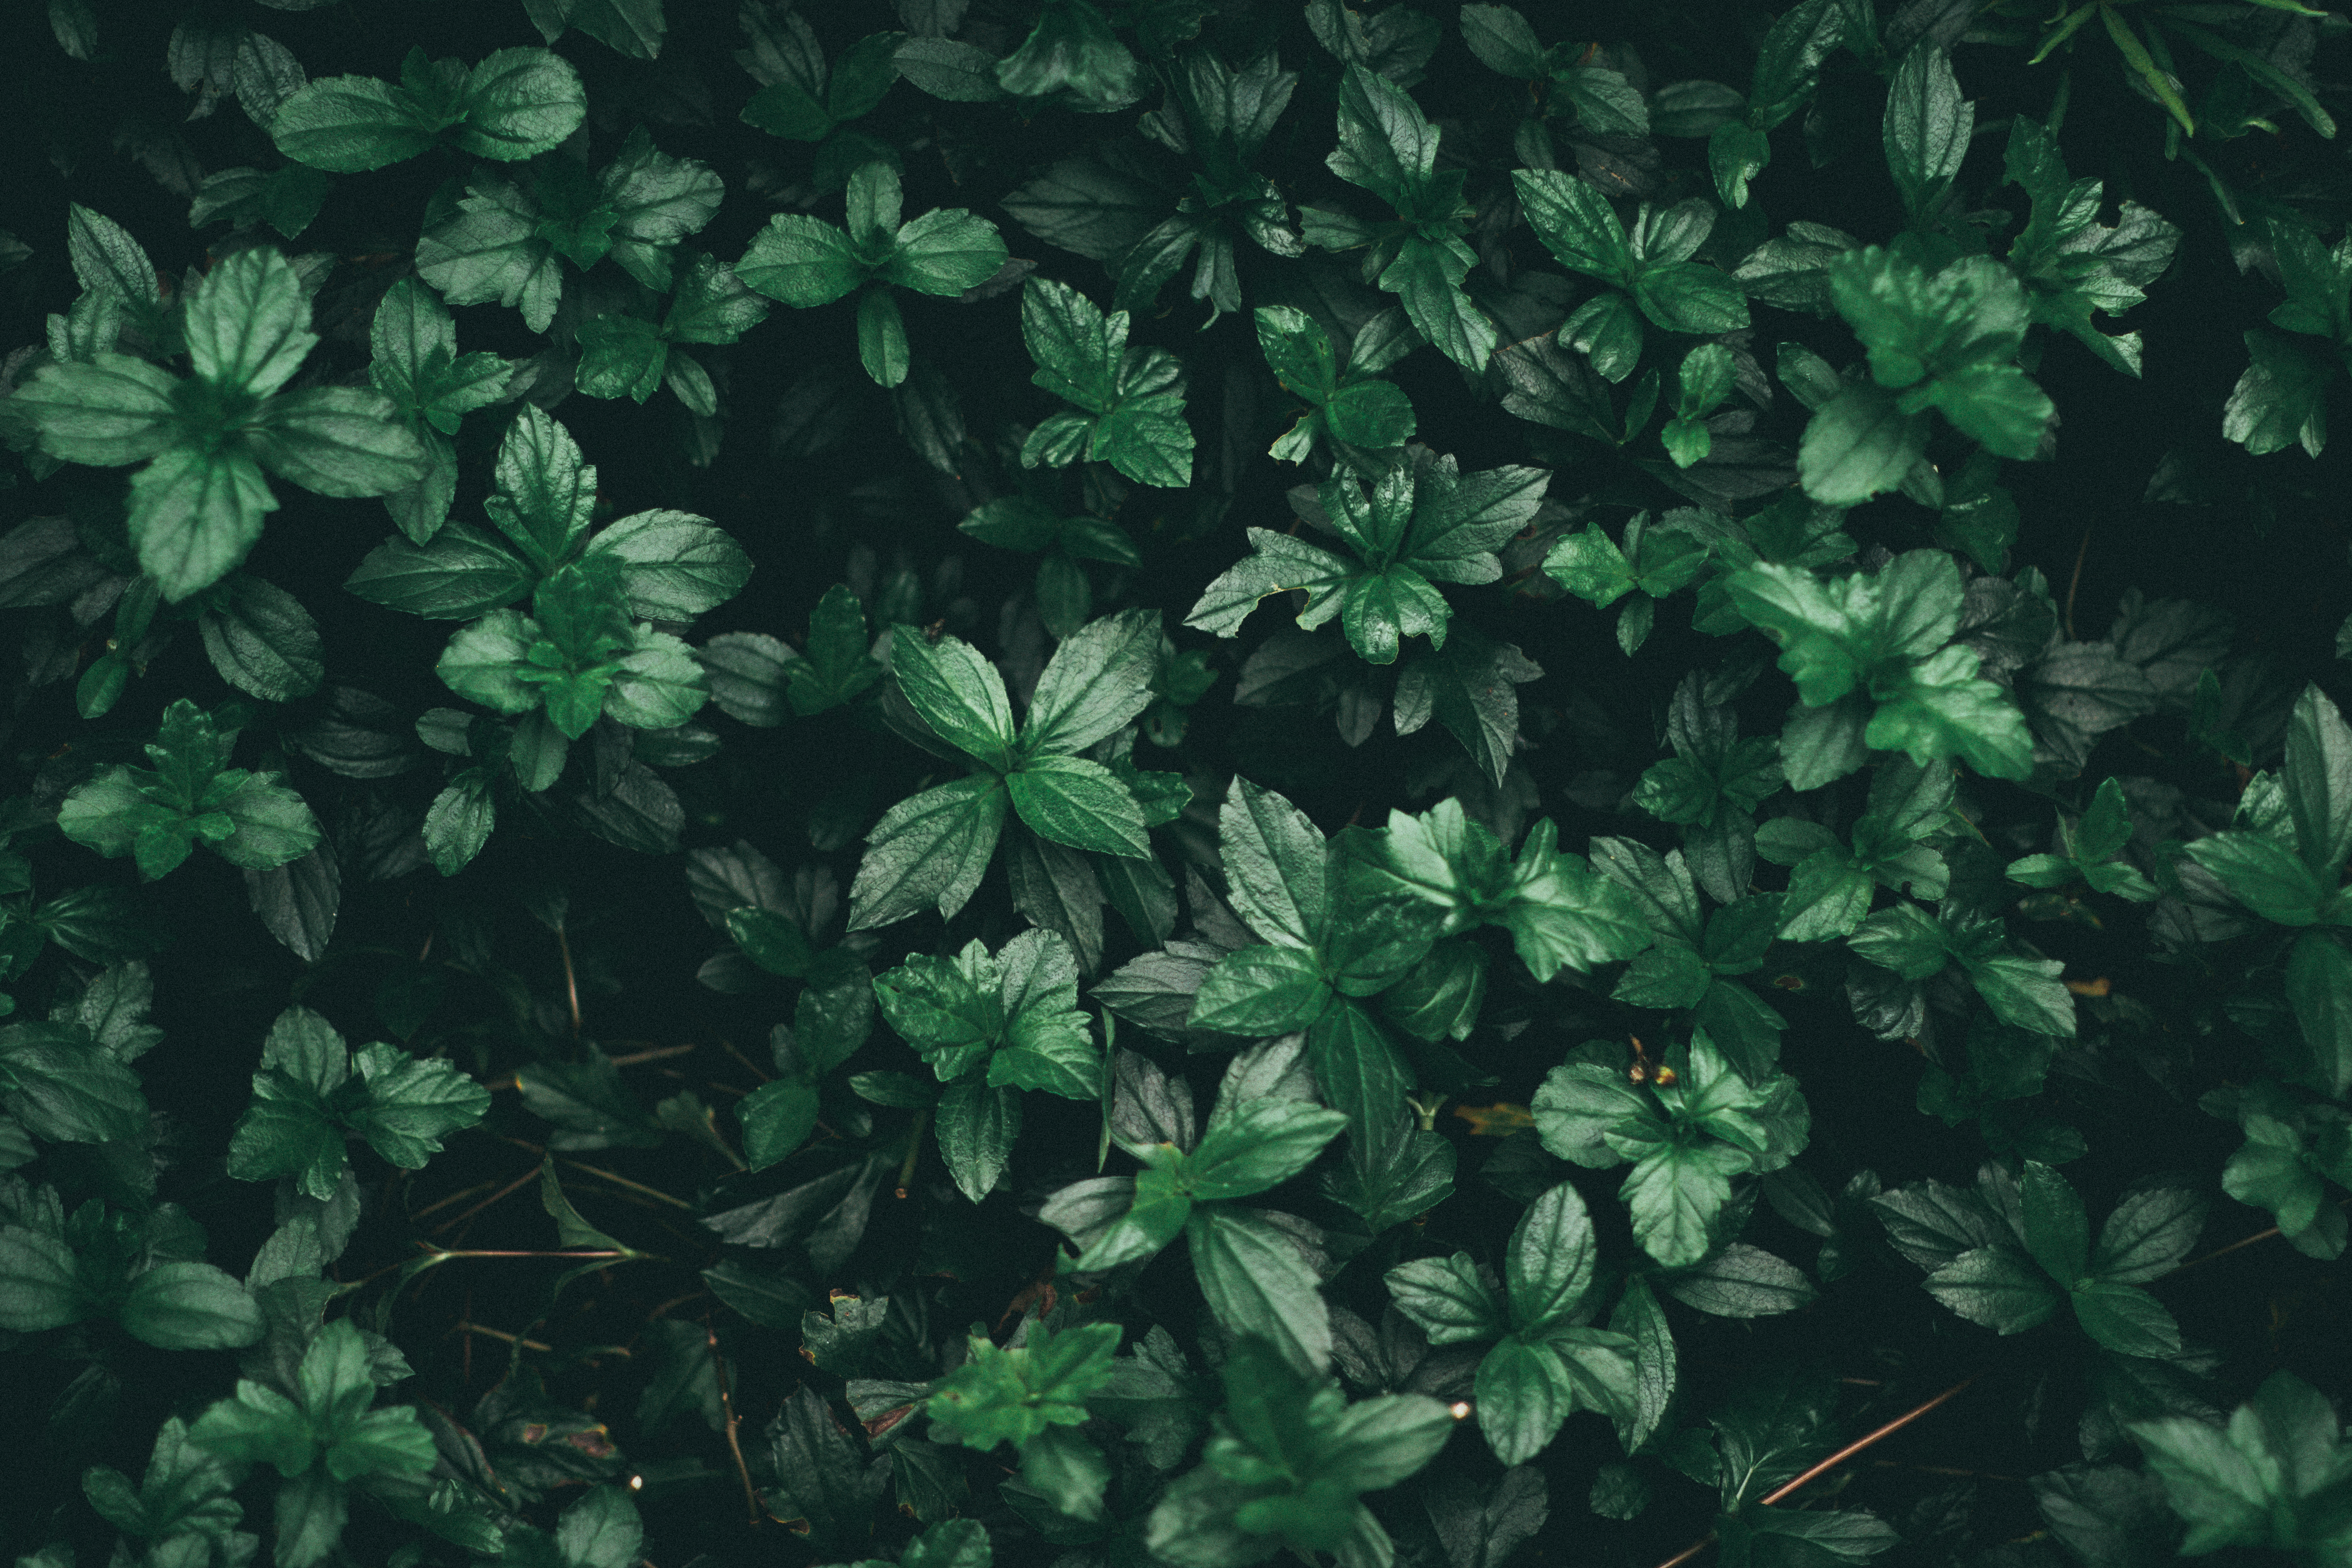 Green Forest Wallpaper Hd 1000 Great Leaves Photos 183 Pexels 183 Free Stock Photos